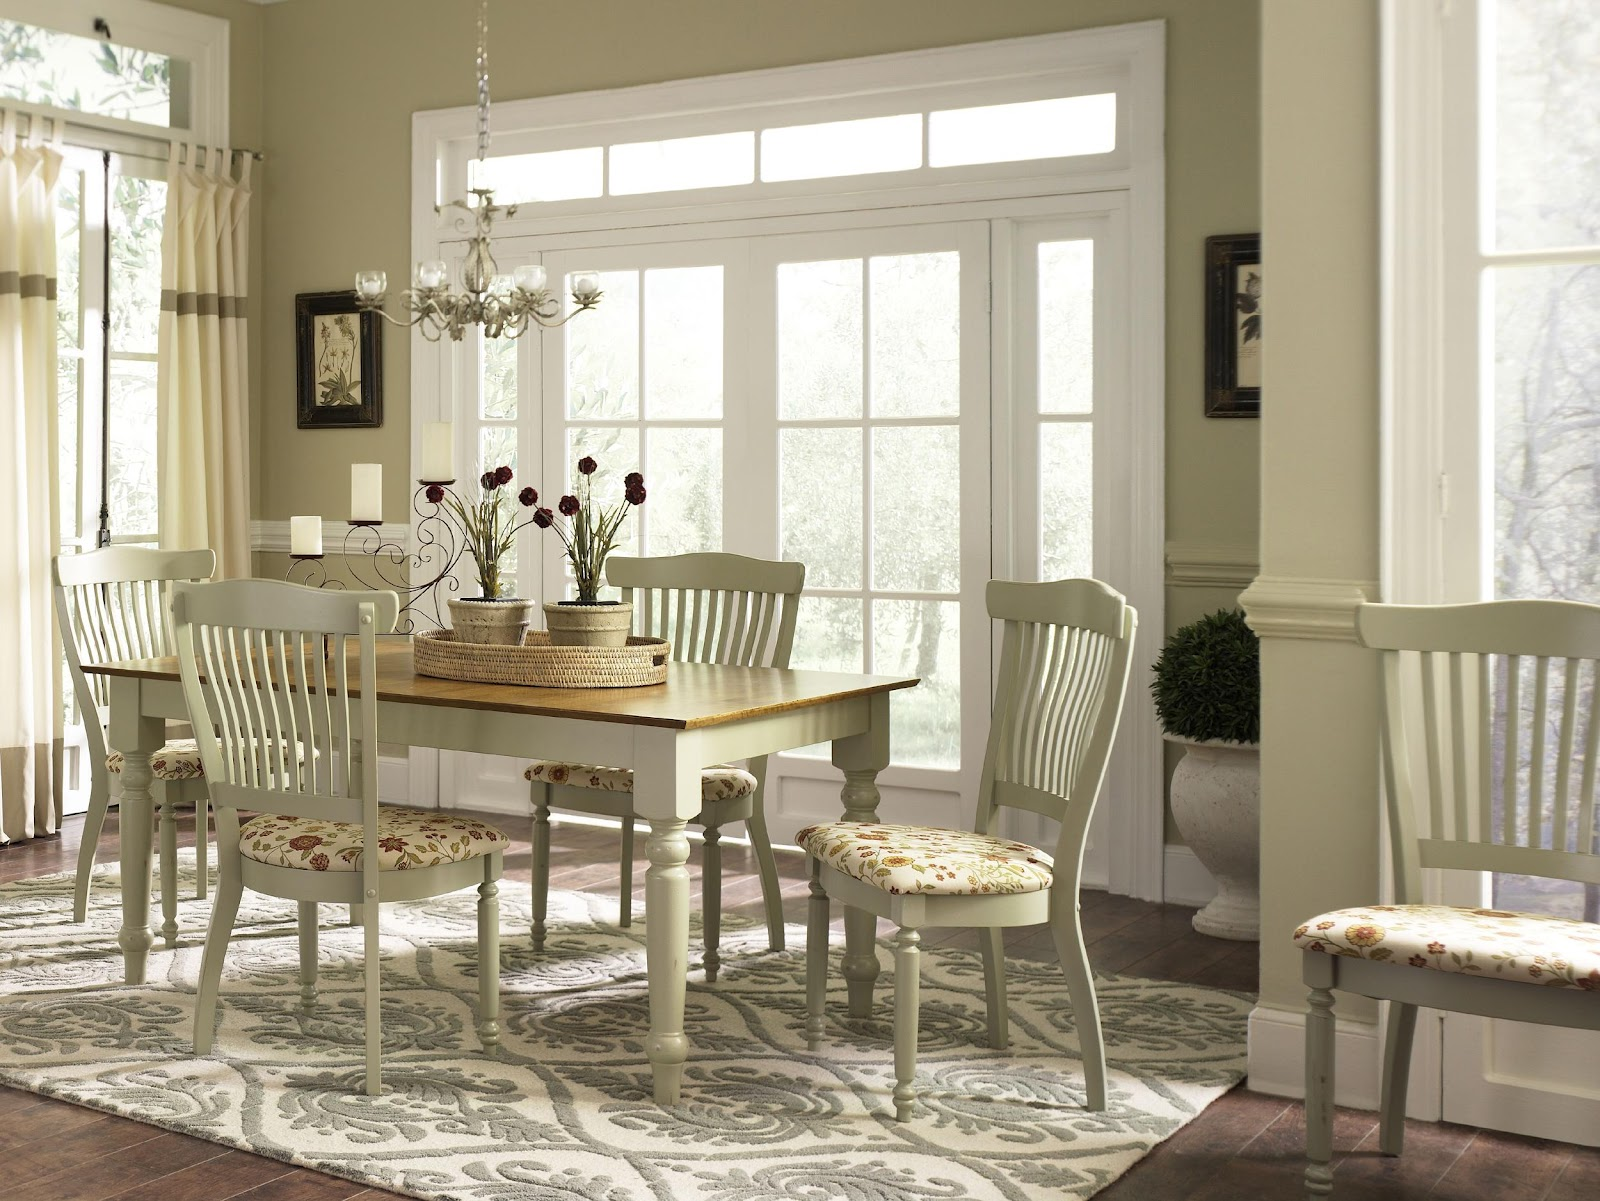 Canadel Dining Room Sets New York DINING ROOMUNIQUE DINETTE Country